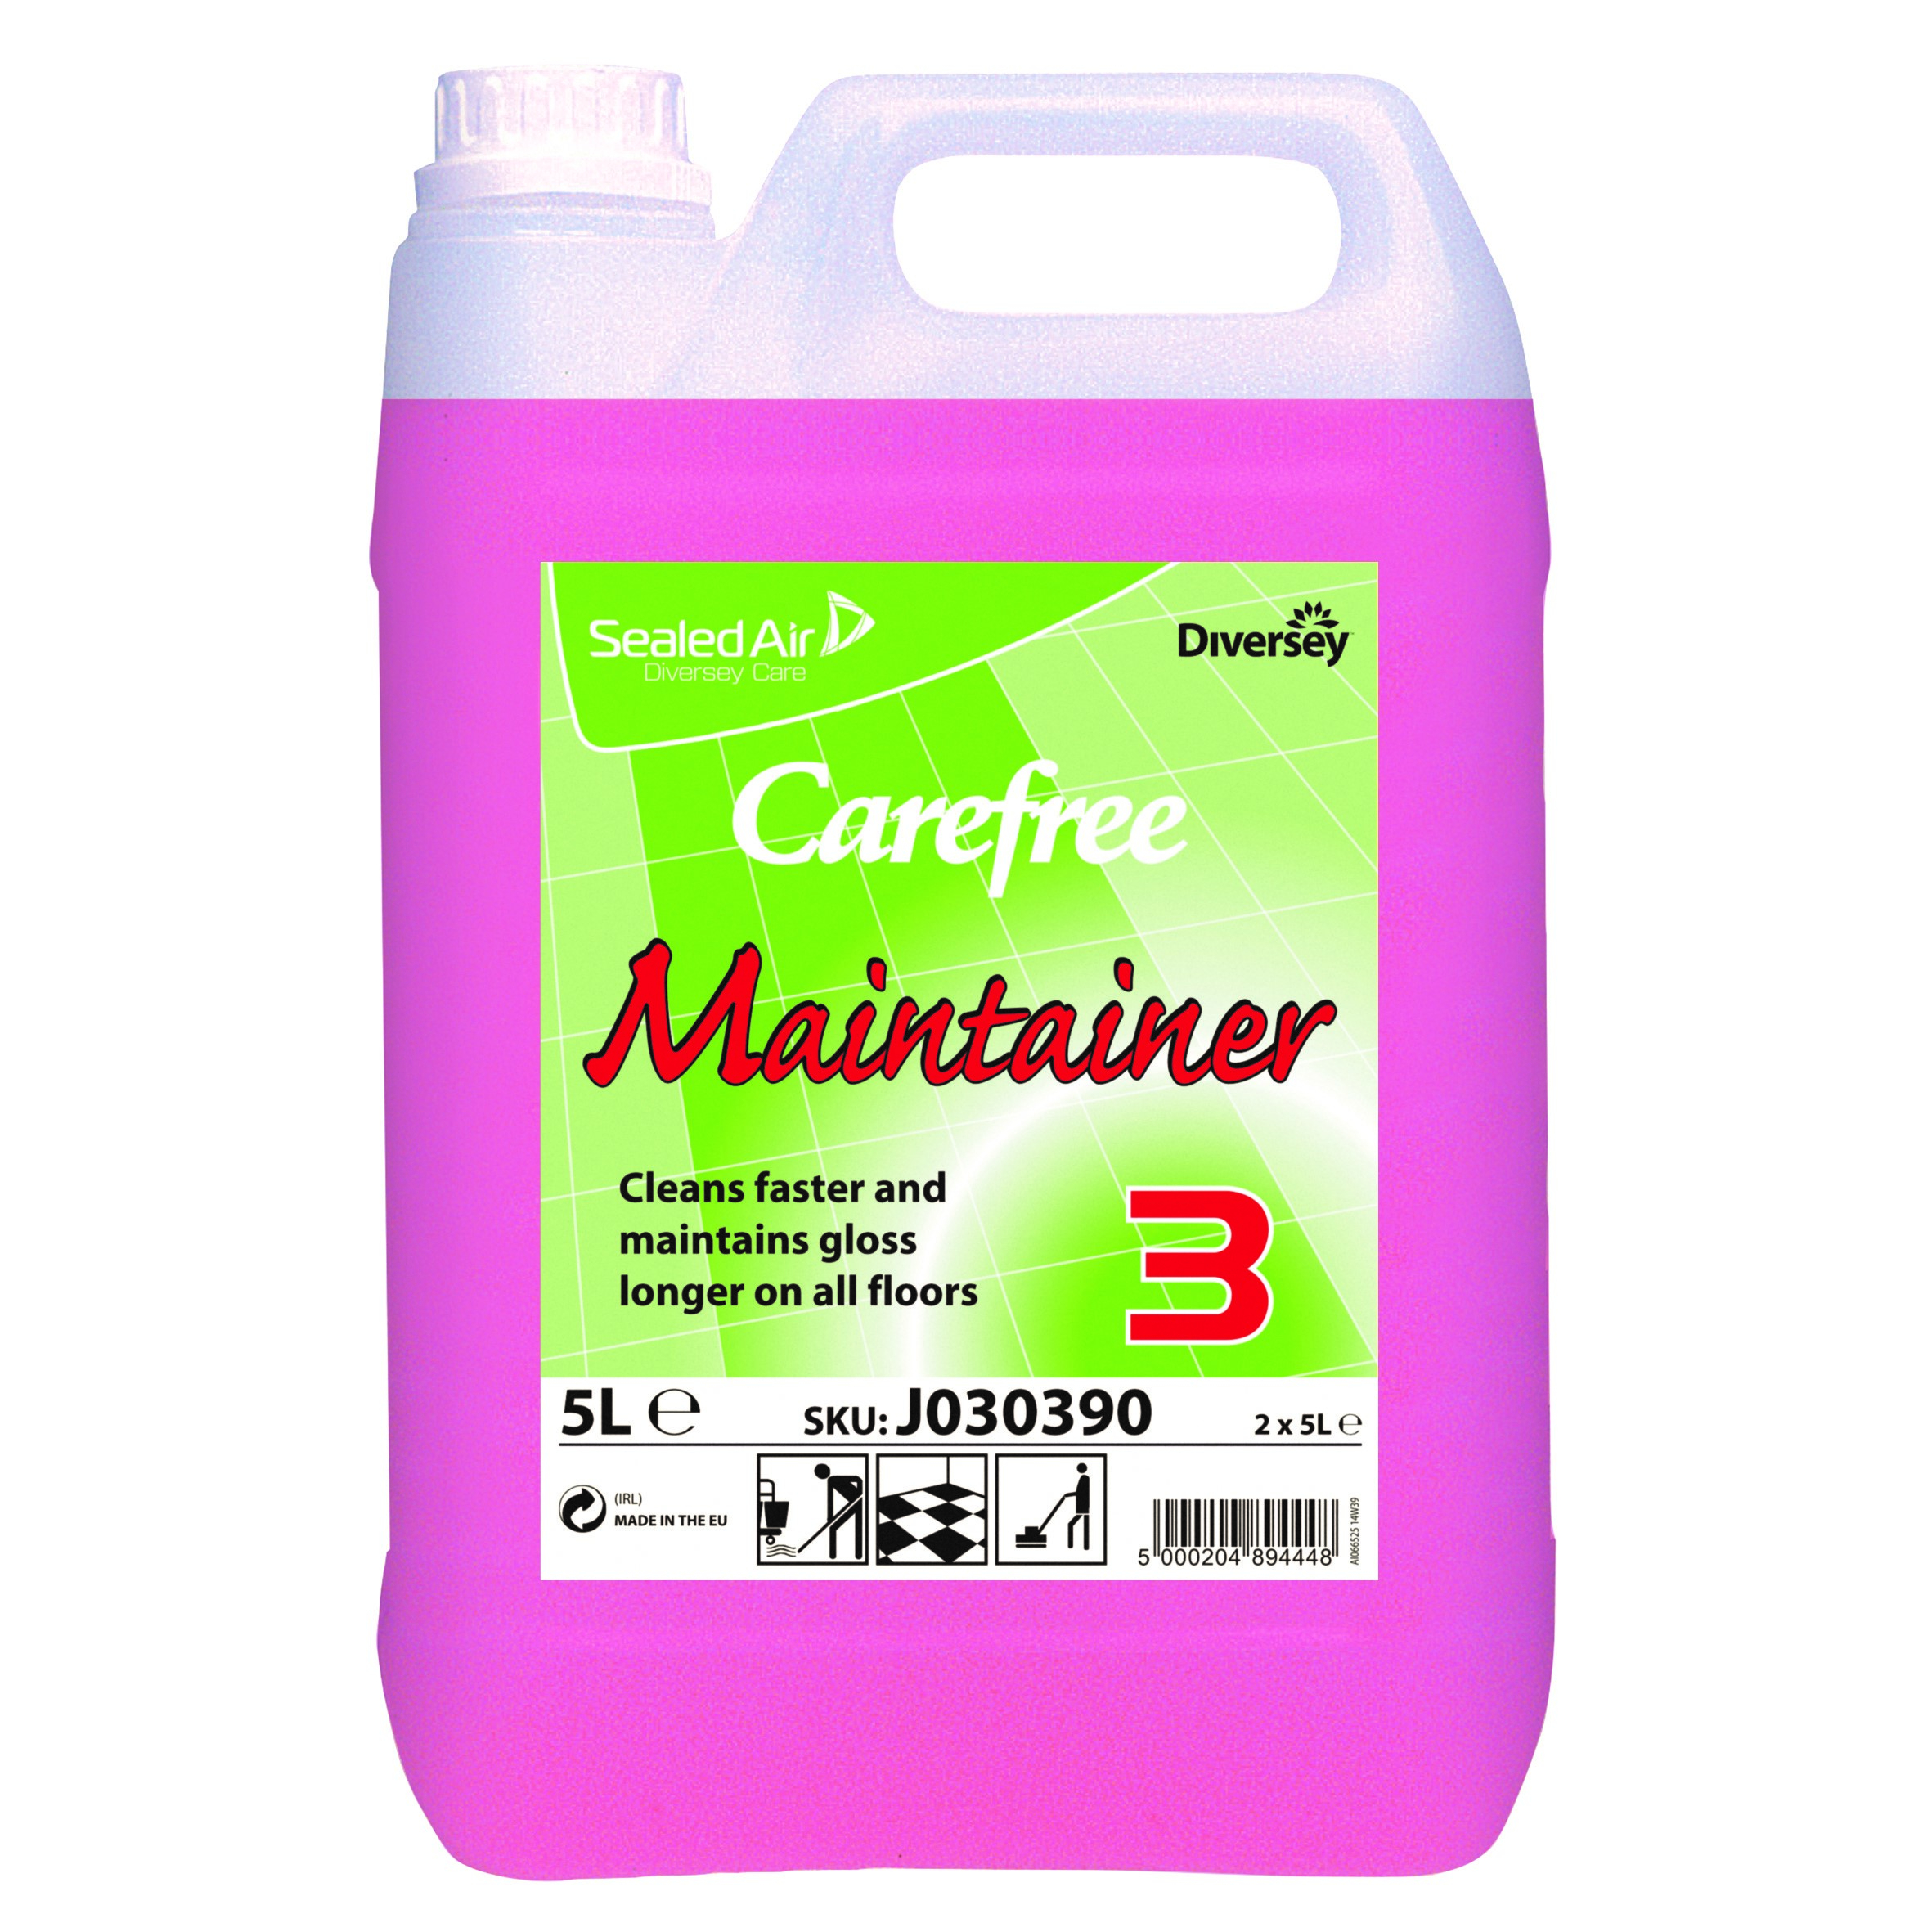 Carefree Maintainer - 2 x 5L